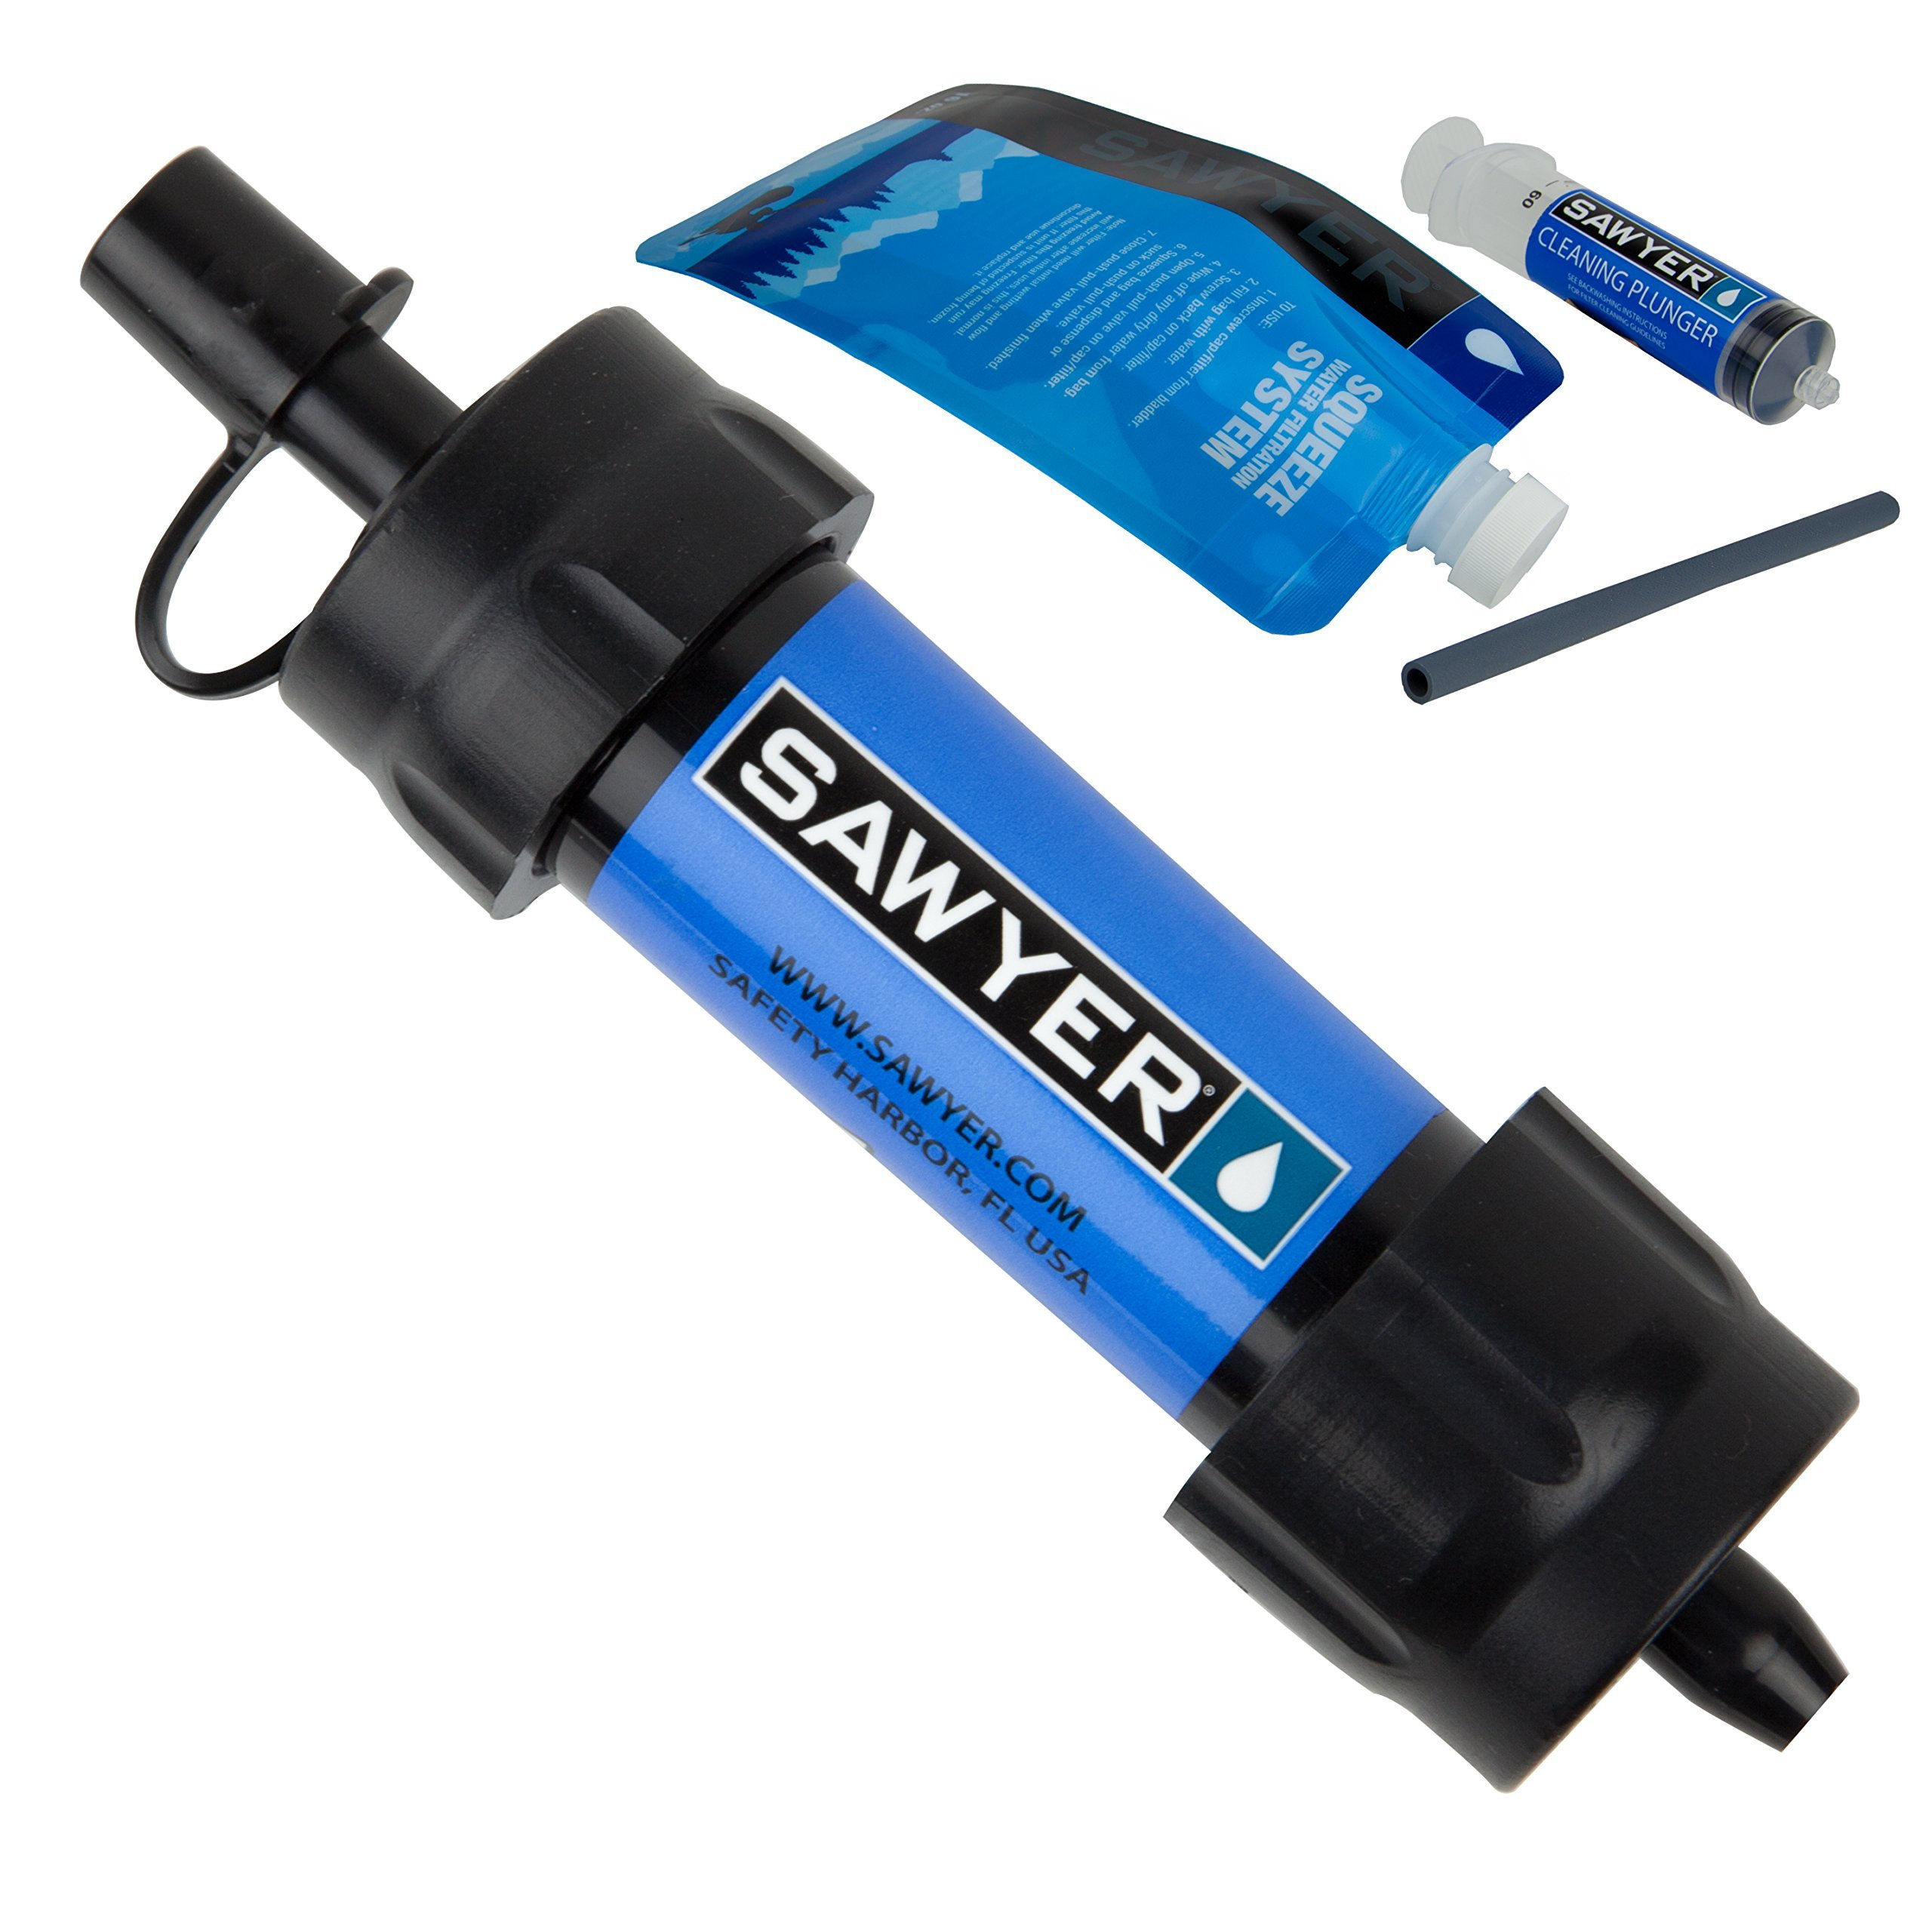 Sawyer Products SP128 Mini Water Filtration System, Single, Blue by Sawyer Products